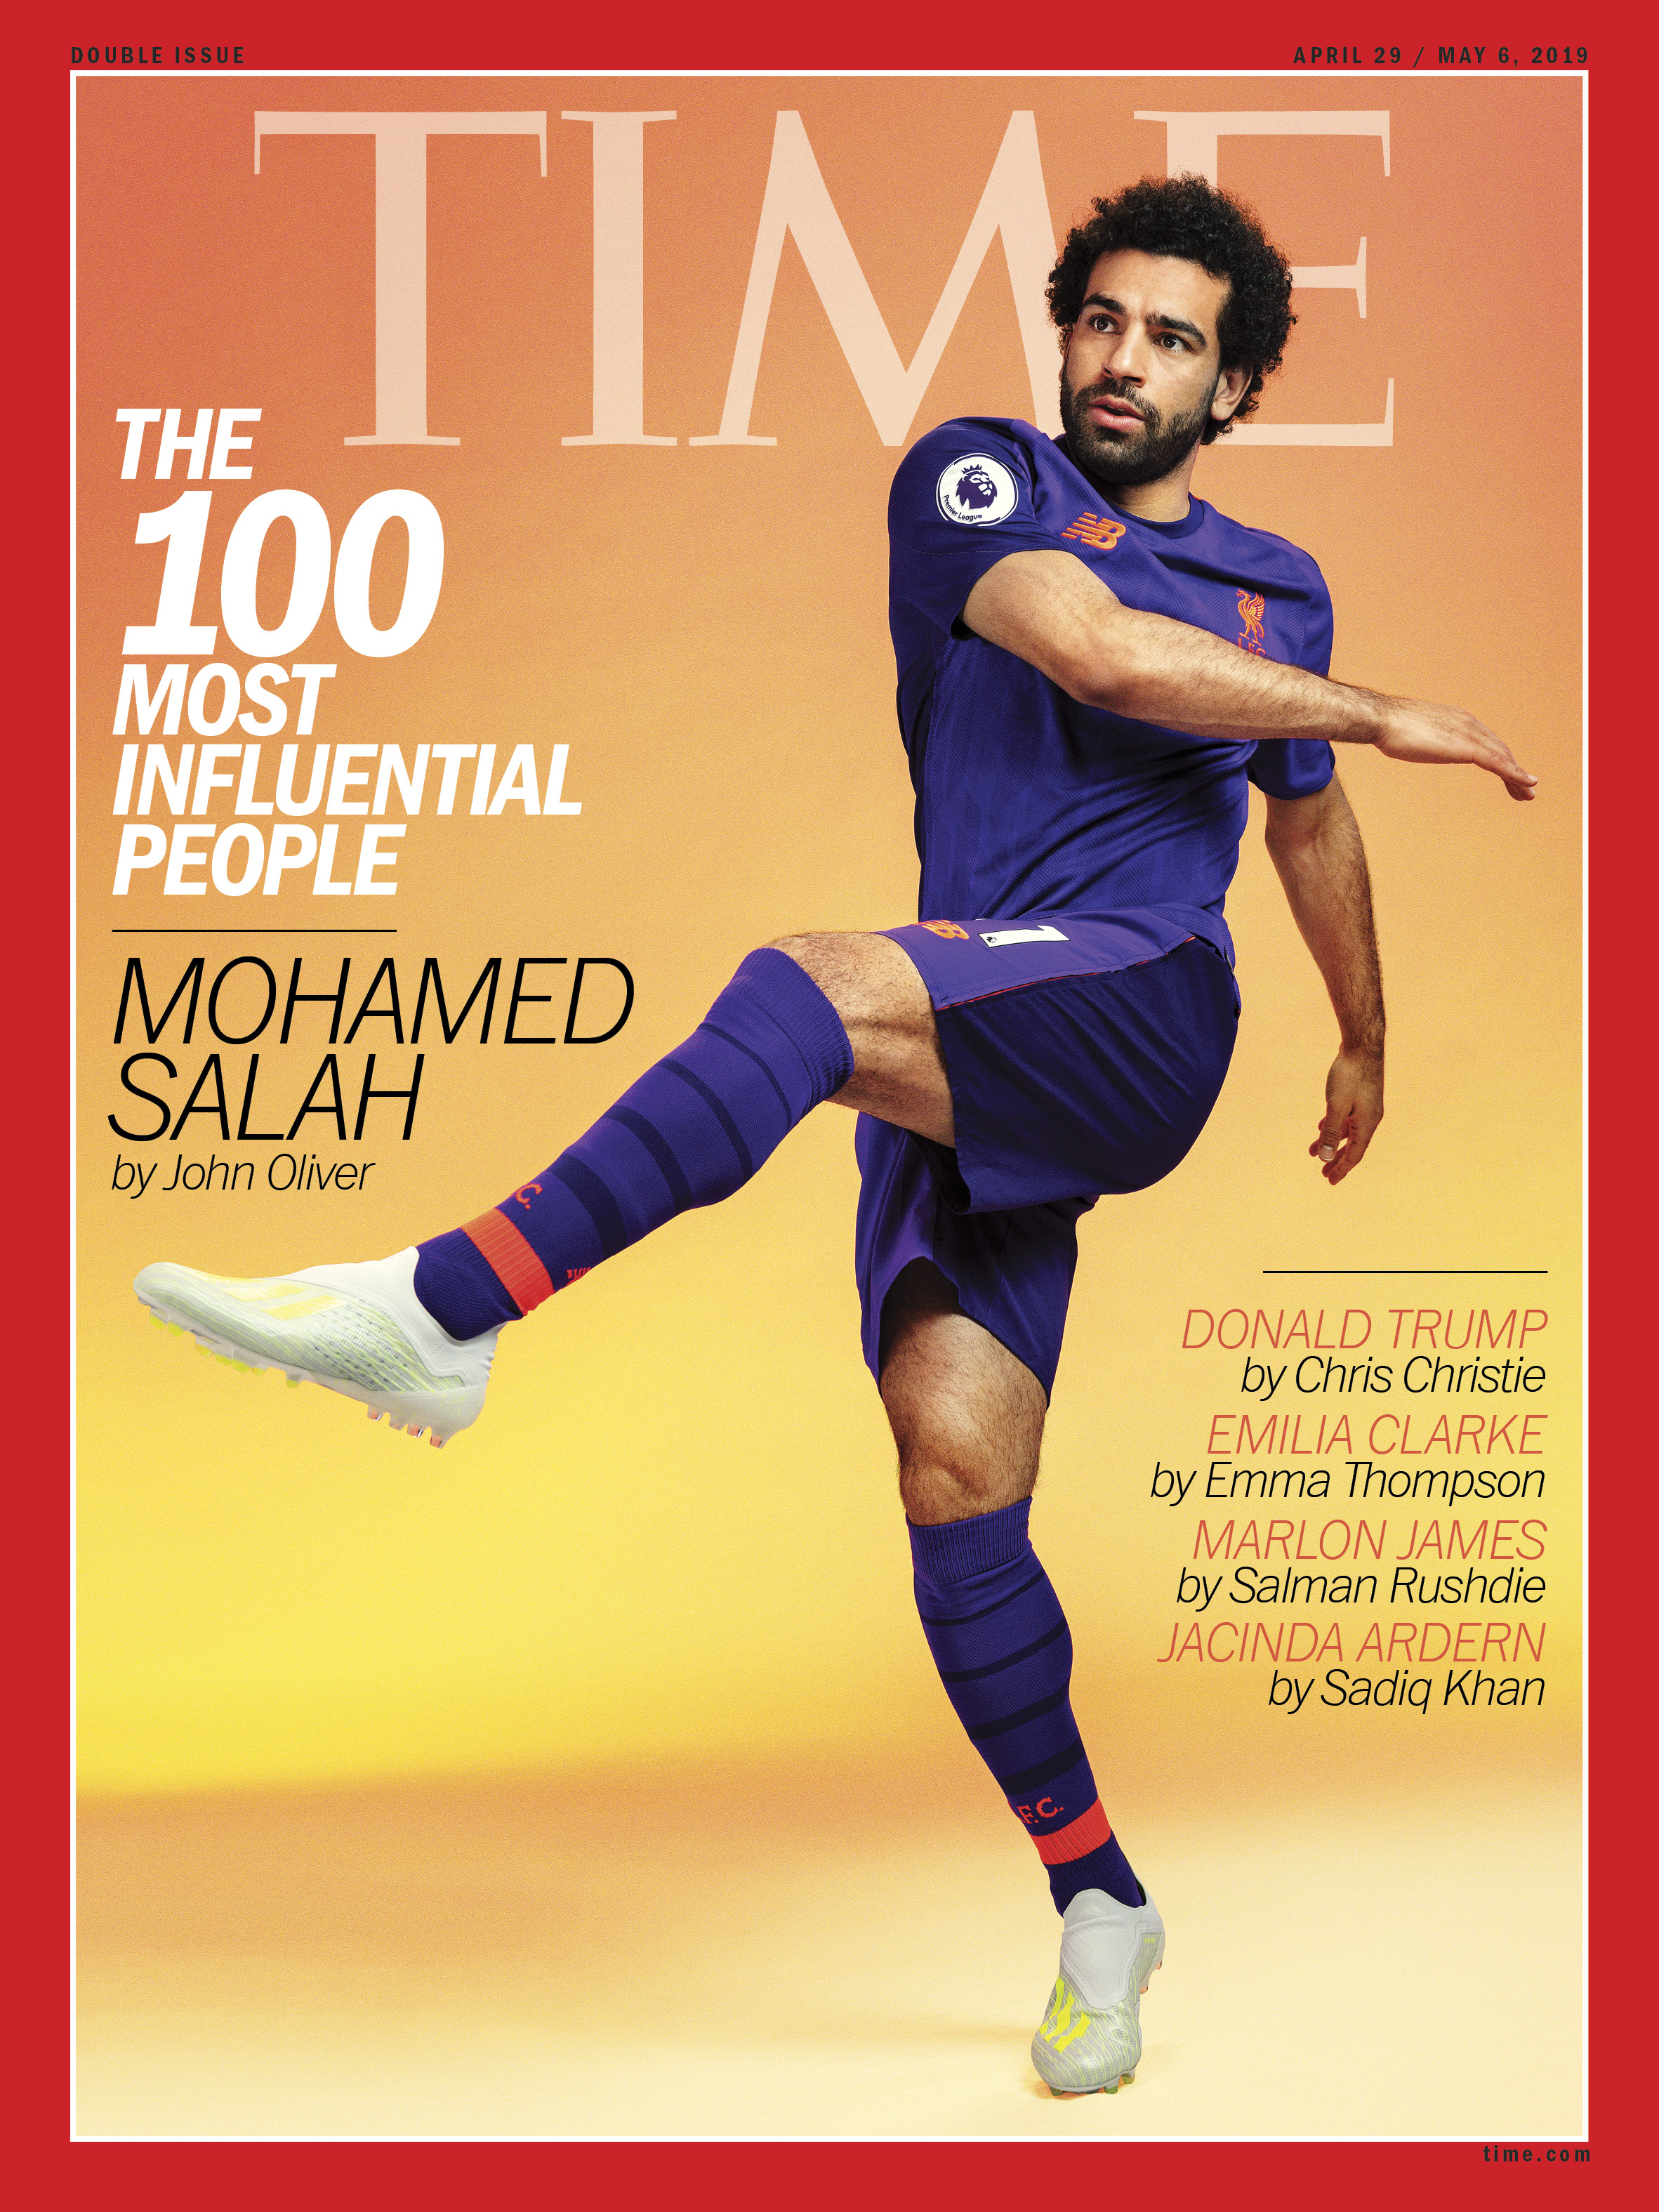 Time cover star